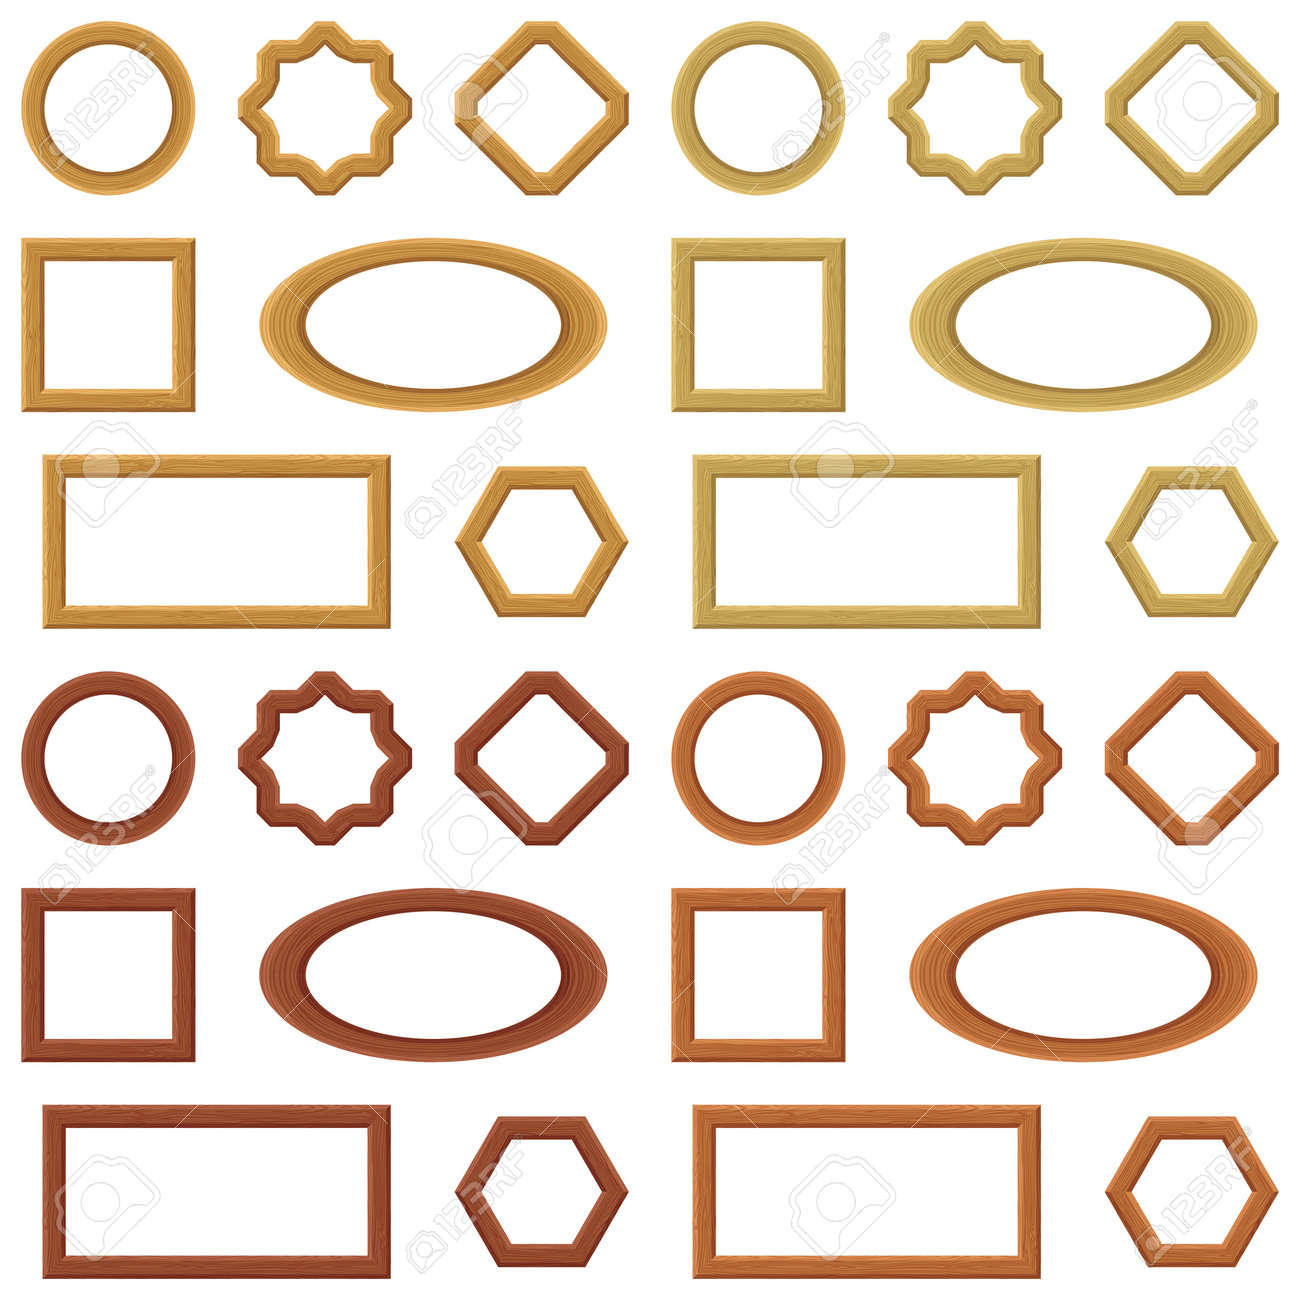 Wood frames set free vector - Set Of Empty Wooden Frames Different Shapes Vector Stock Vector 21537282